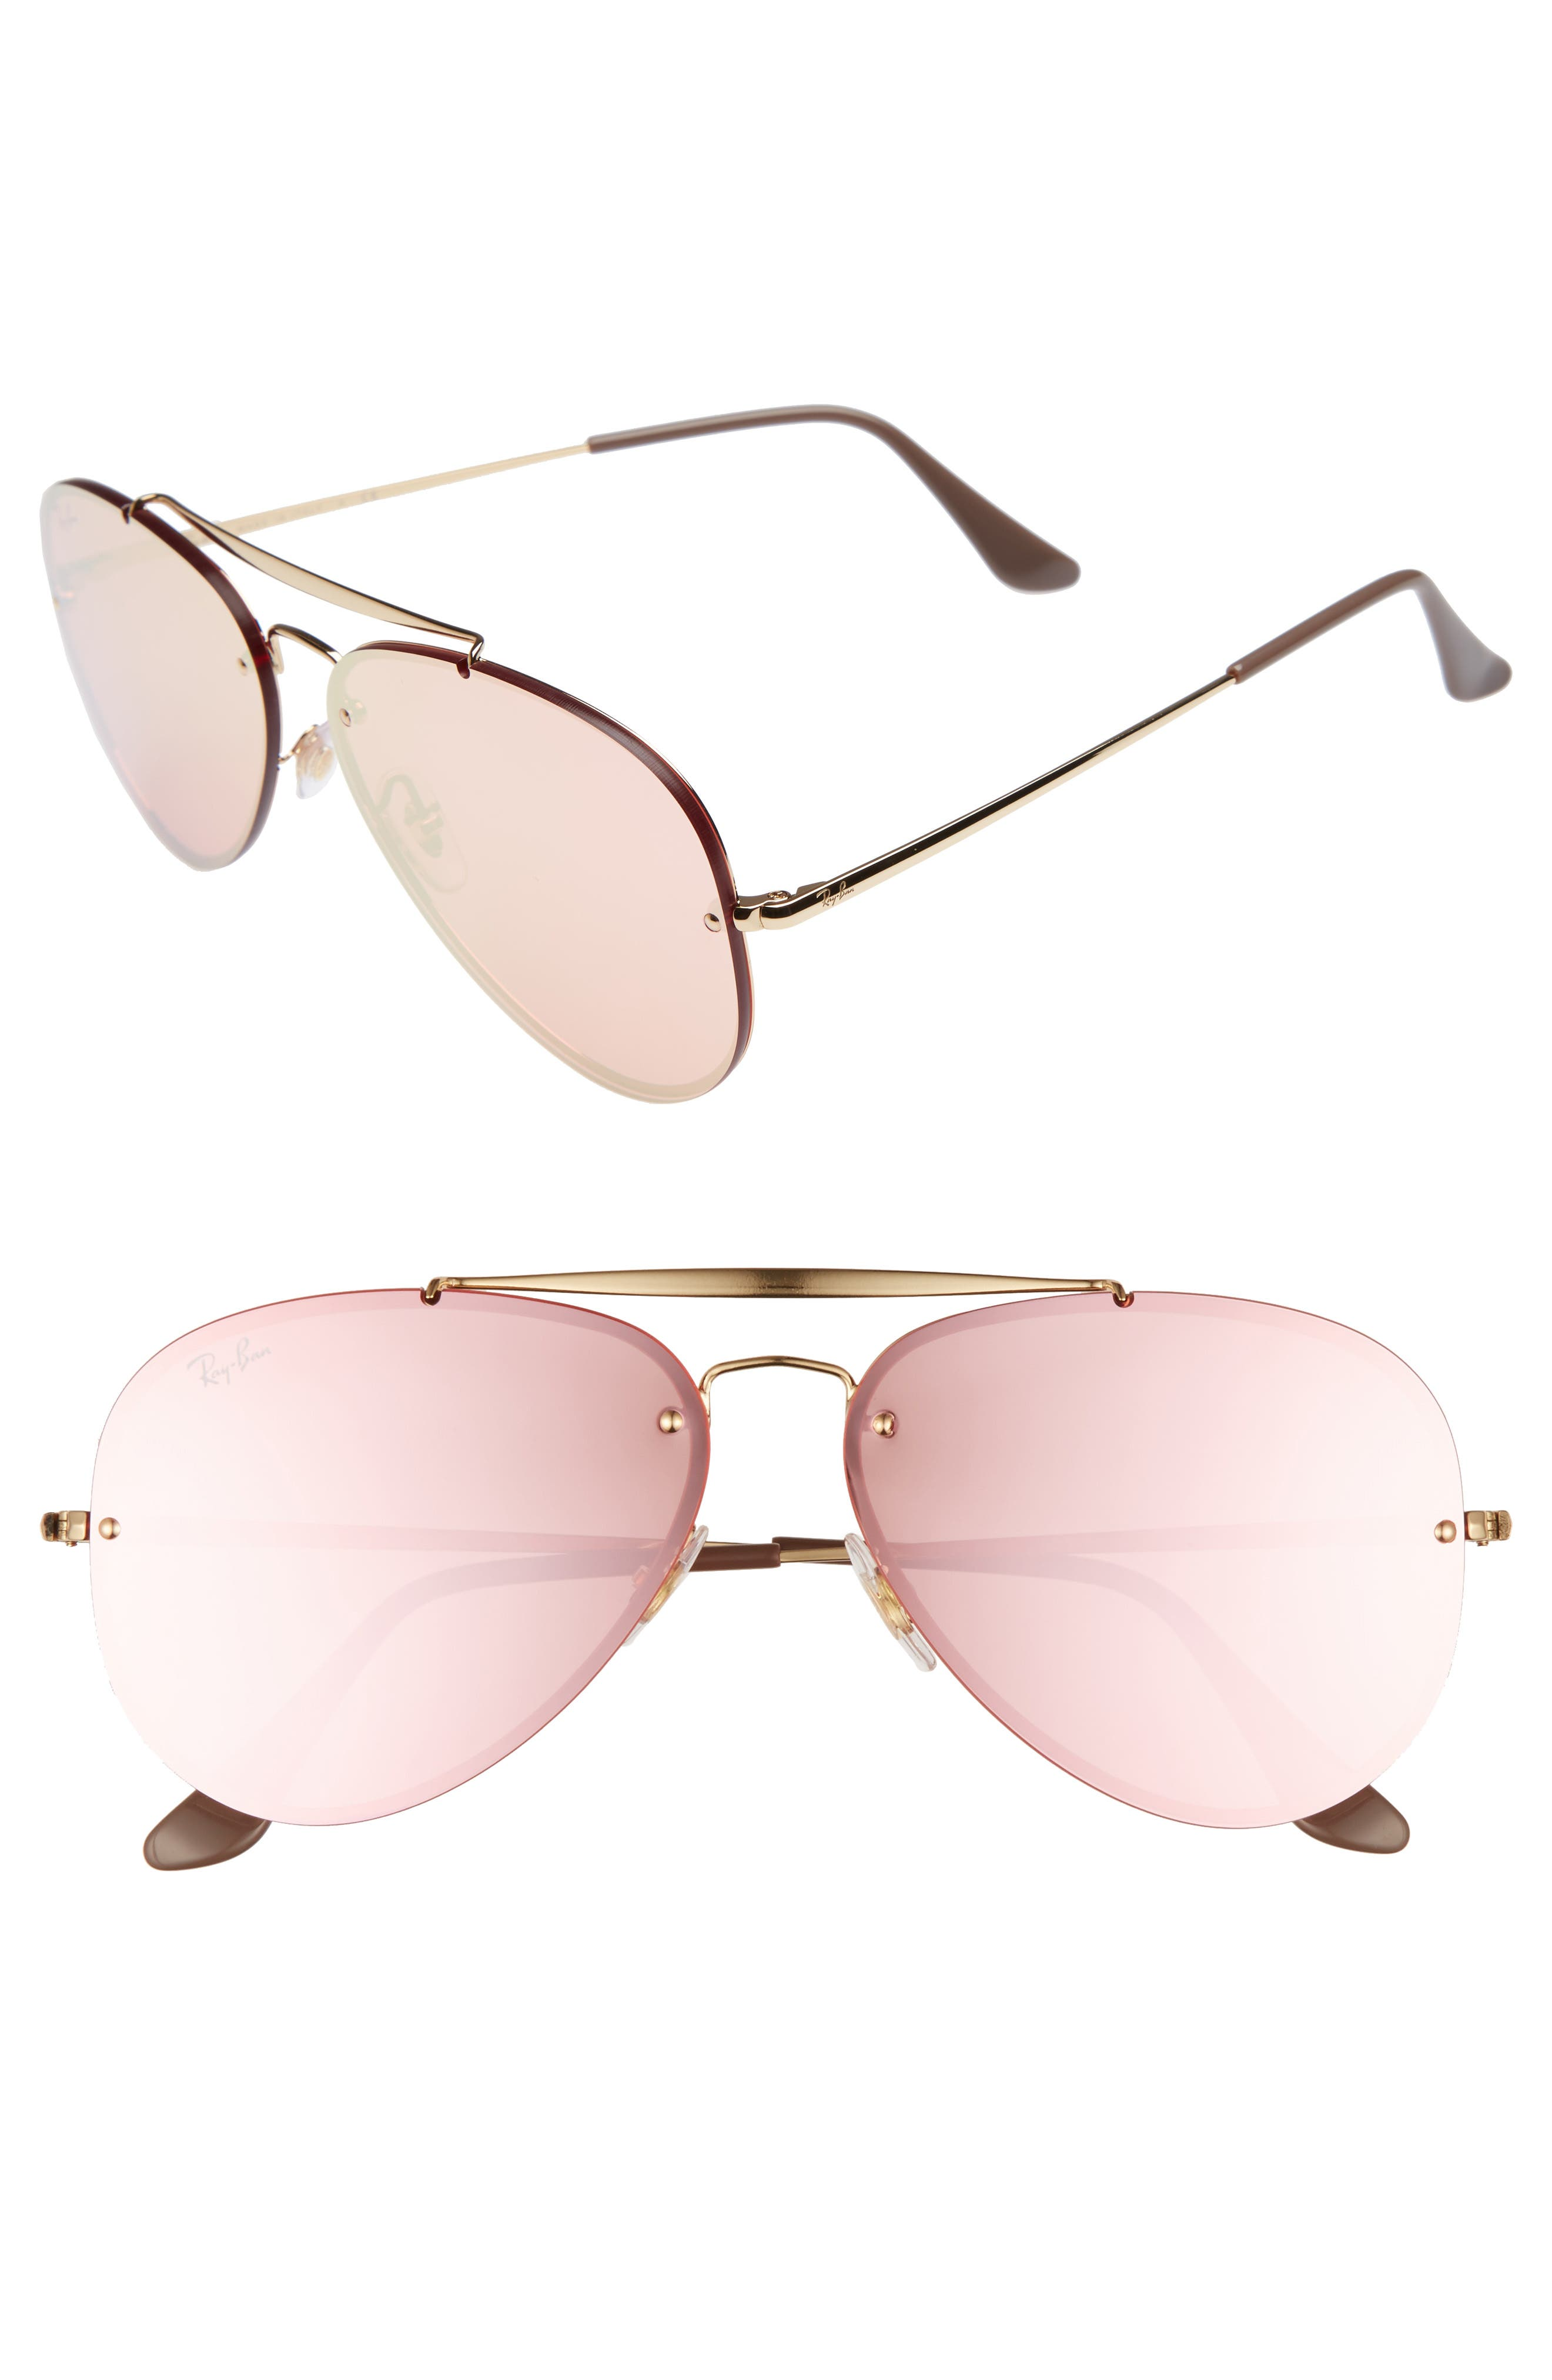 61mm Mirrored Lens Aviator Sunglasses,                         Main,                         color, Gold Pink